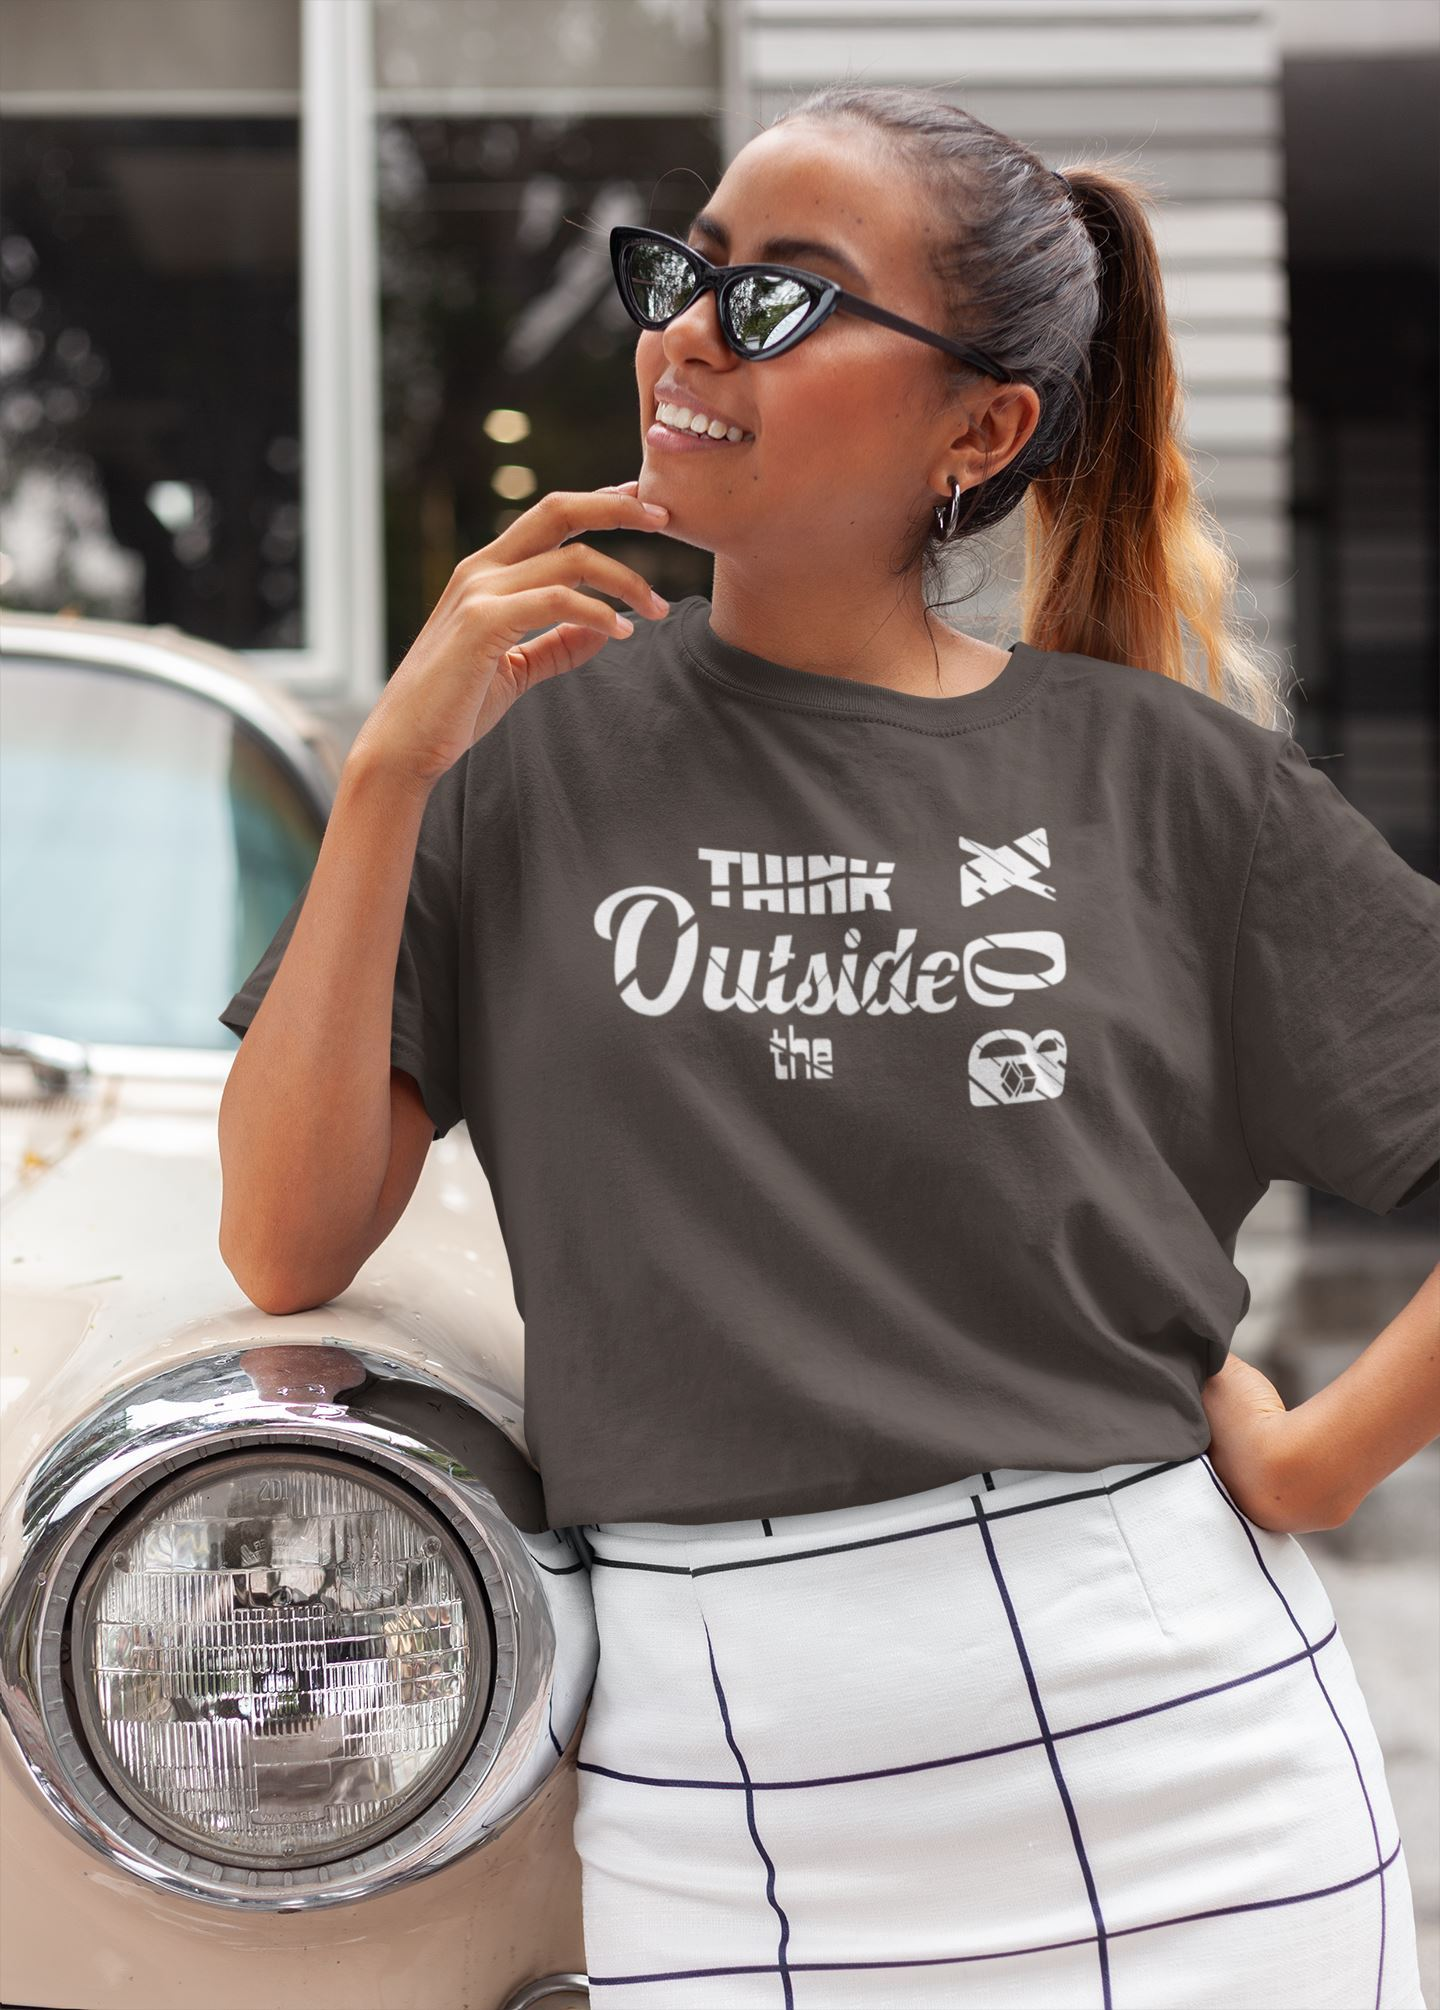 Think Outside The Box Tee Women T-shirt EntrepreneurKing.co Brown S